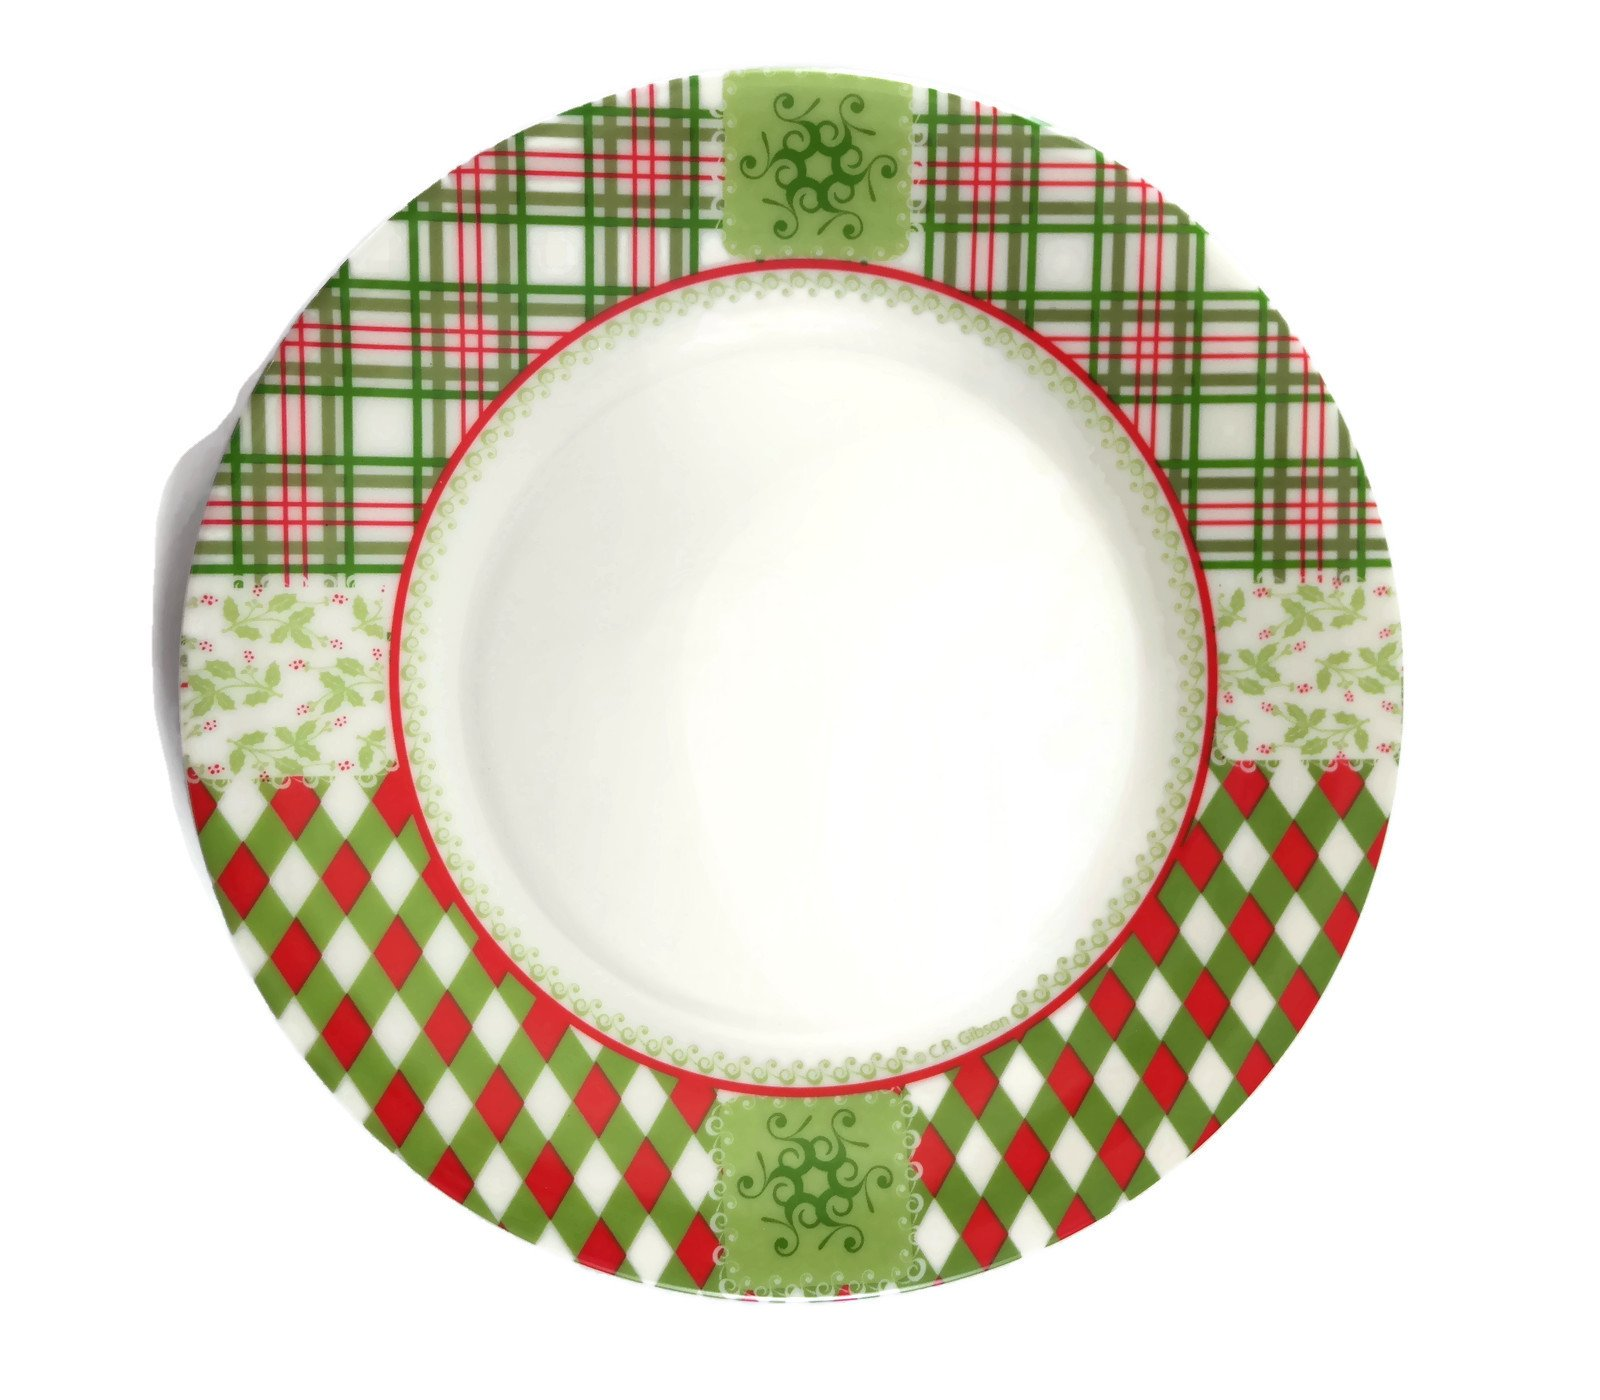 C.R. Gibson Green and Red Plaid Classic Christmas Dessert Plates, Set of 6